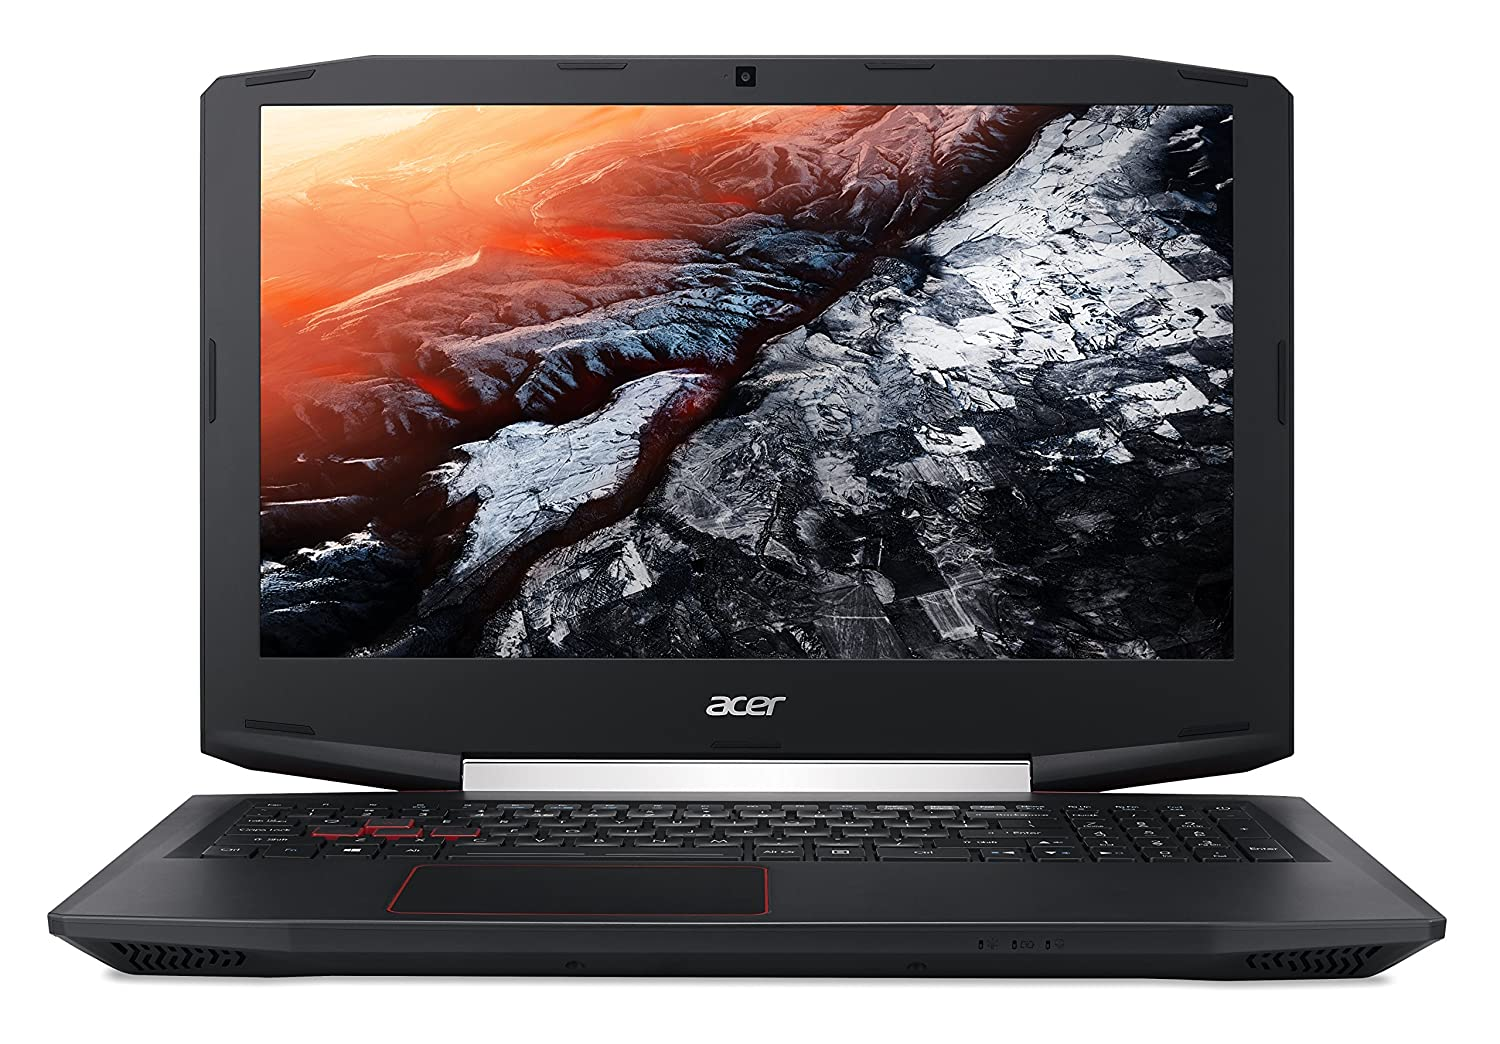 Acer Aspire VX 15 Gaming Laptop, 7th Gen Intel Core i7, NVIDIA GeForce GTX 1050 Ti, 15.6 Full HD, 16GB DDR4, 256GB SSD, VX5-591G-75RM